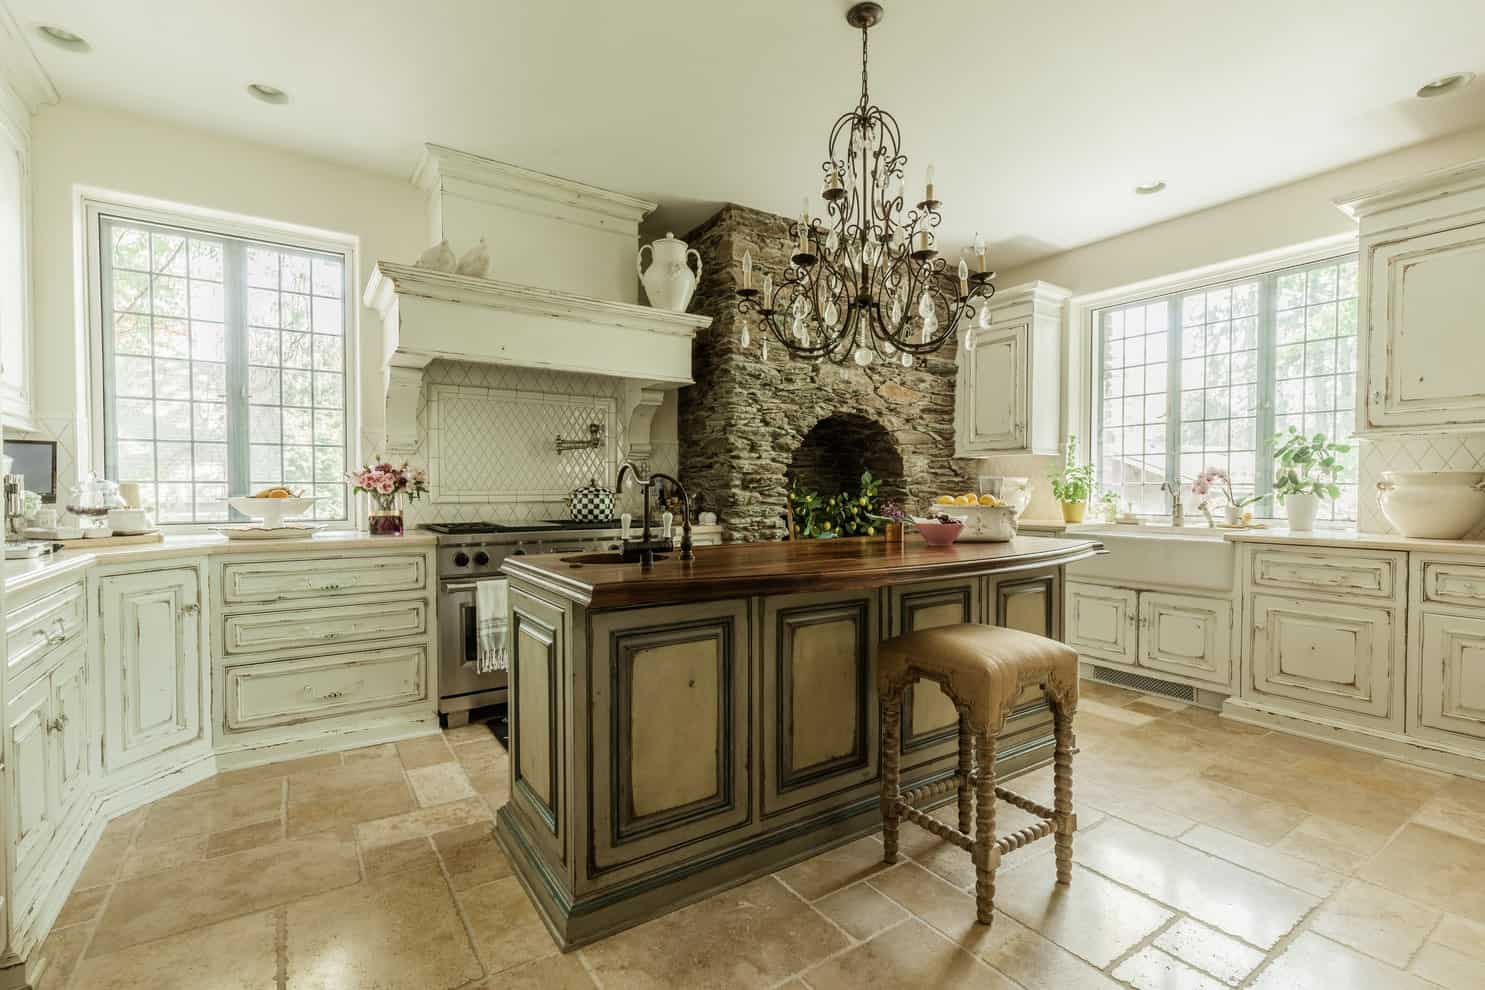 A grand candle chandelier hangs over the wooden top island paired with a cushioned stool on limestone flooring. It has stainless steel appliances and a farmhouse sink that blends in with the distressed white cabinets.